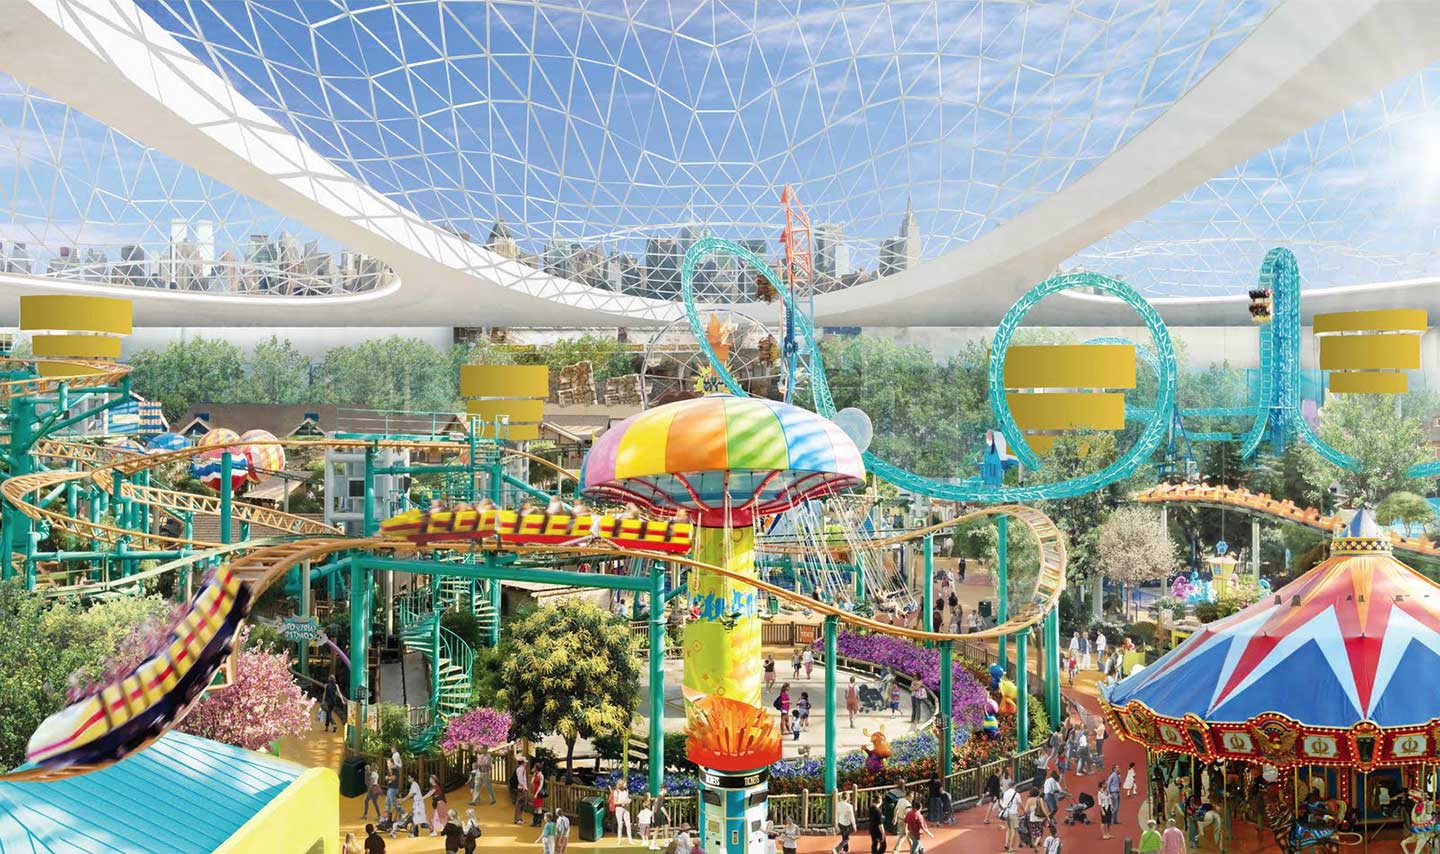 nickelodeon universe theme-park-new jersey american dream 2